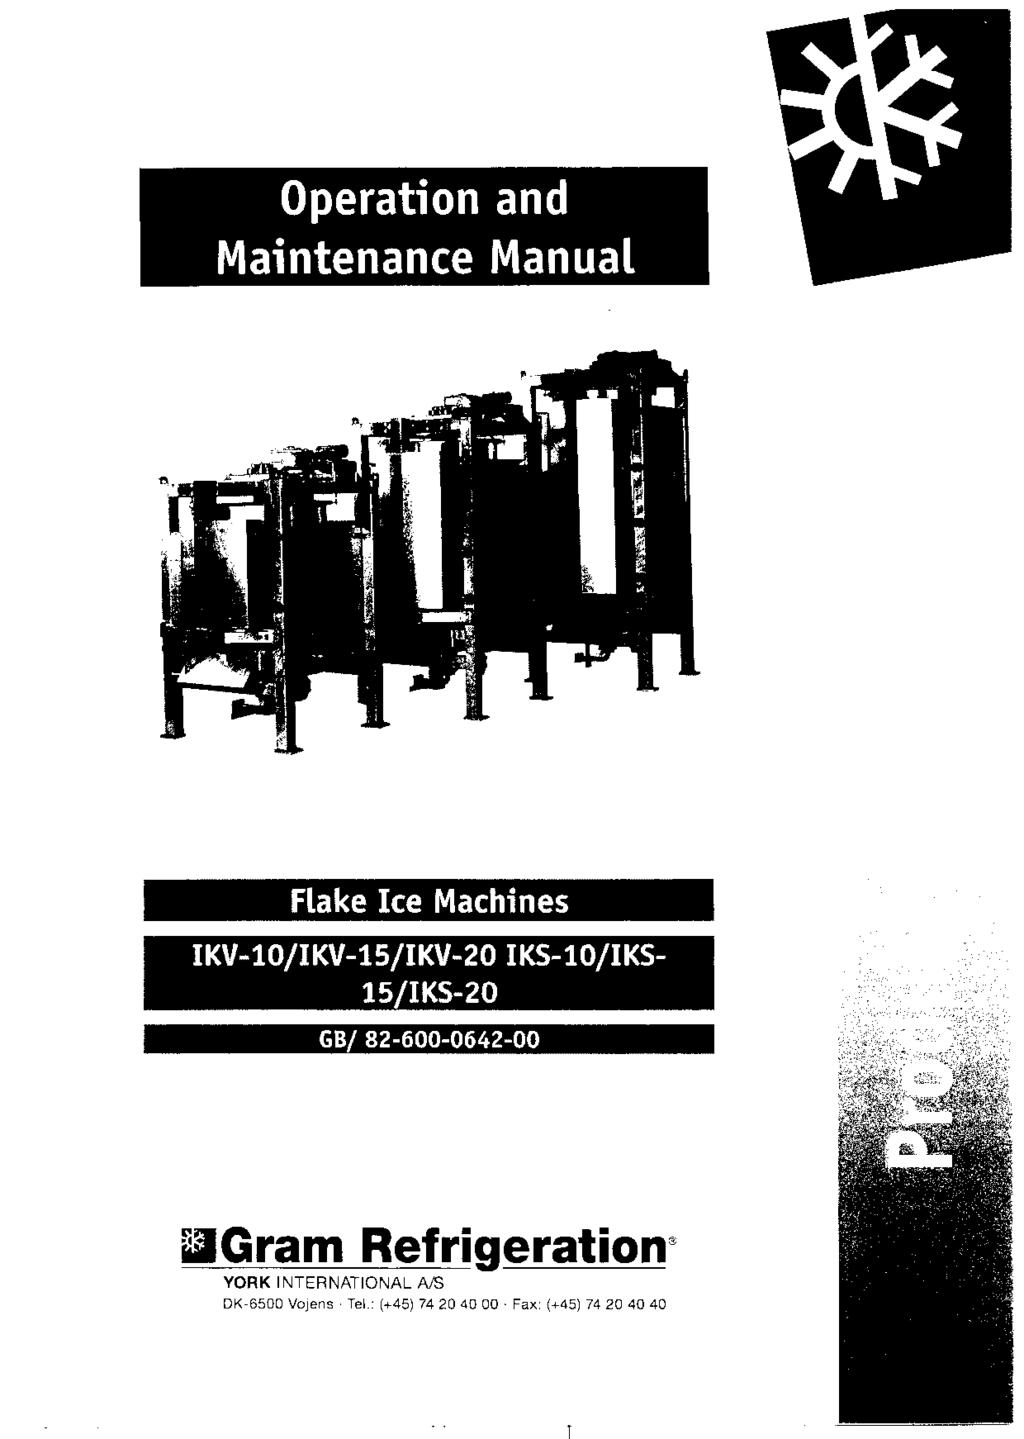 Operation And Maintenance Manual Pdf Motorguide Mg 28 Wiring Diagram Flake Ice Machines Ikv I0 5